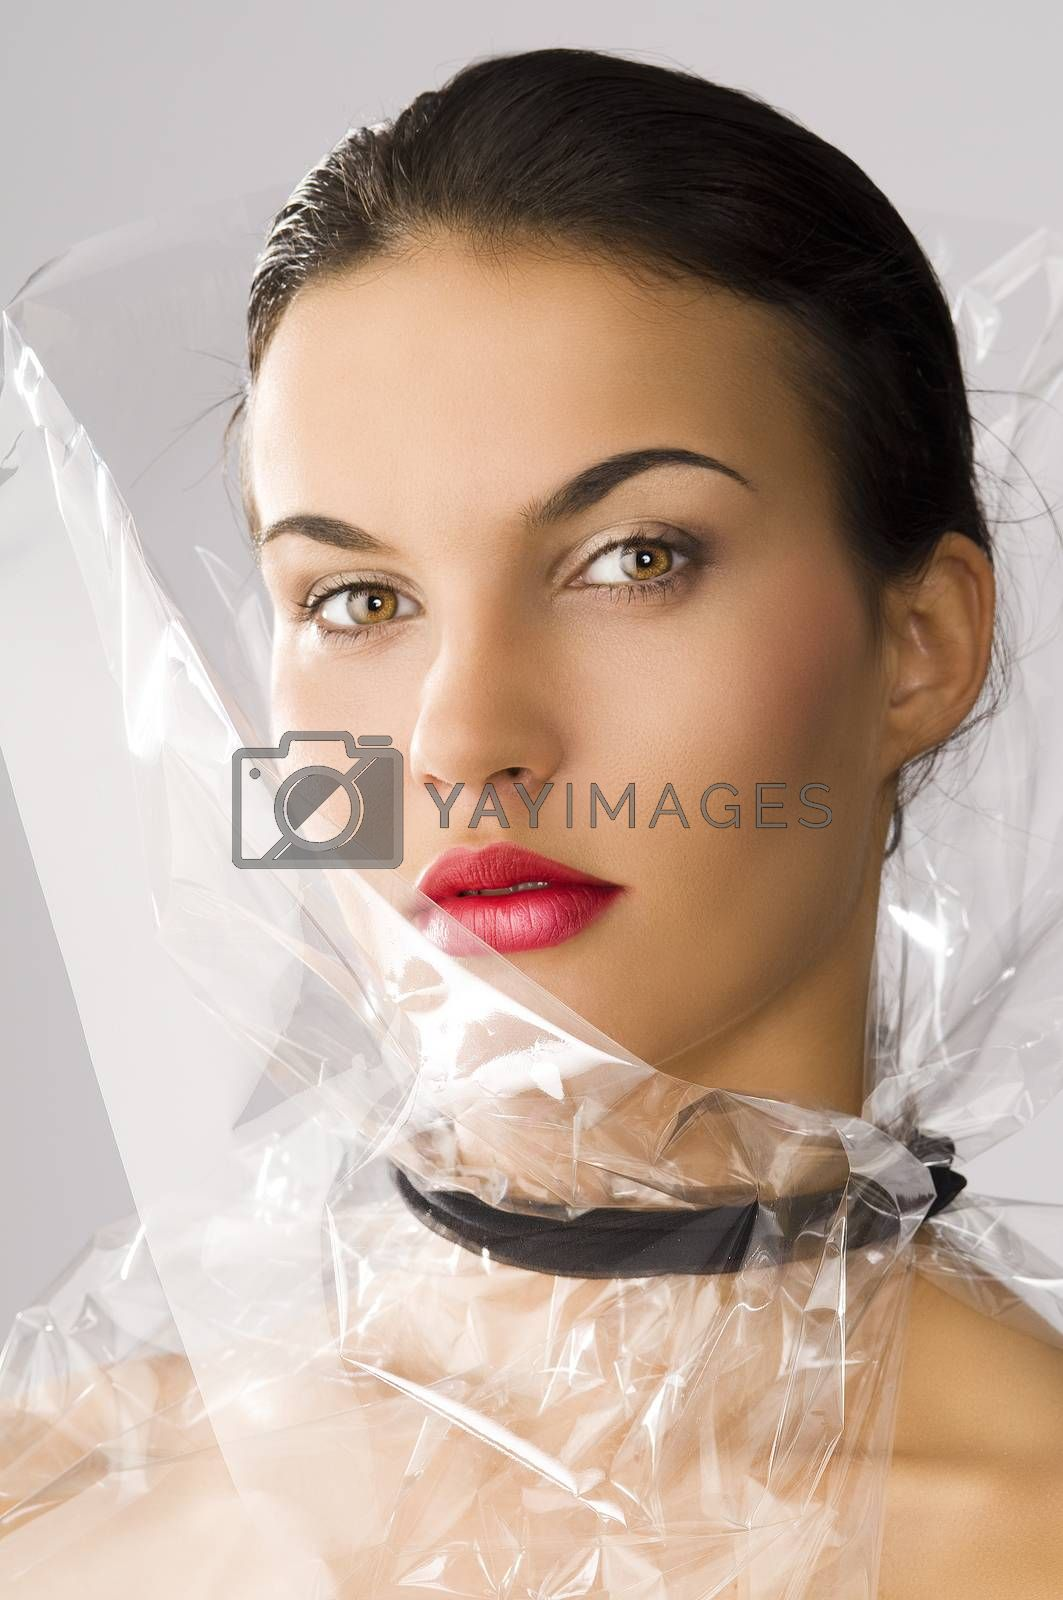 Royalty free image of beauty style she is turned of three quarters by fotoCD